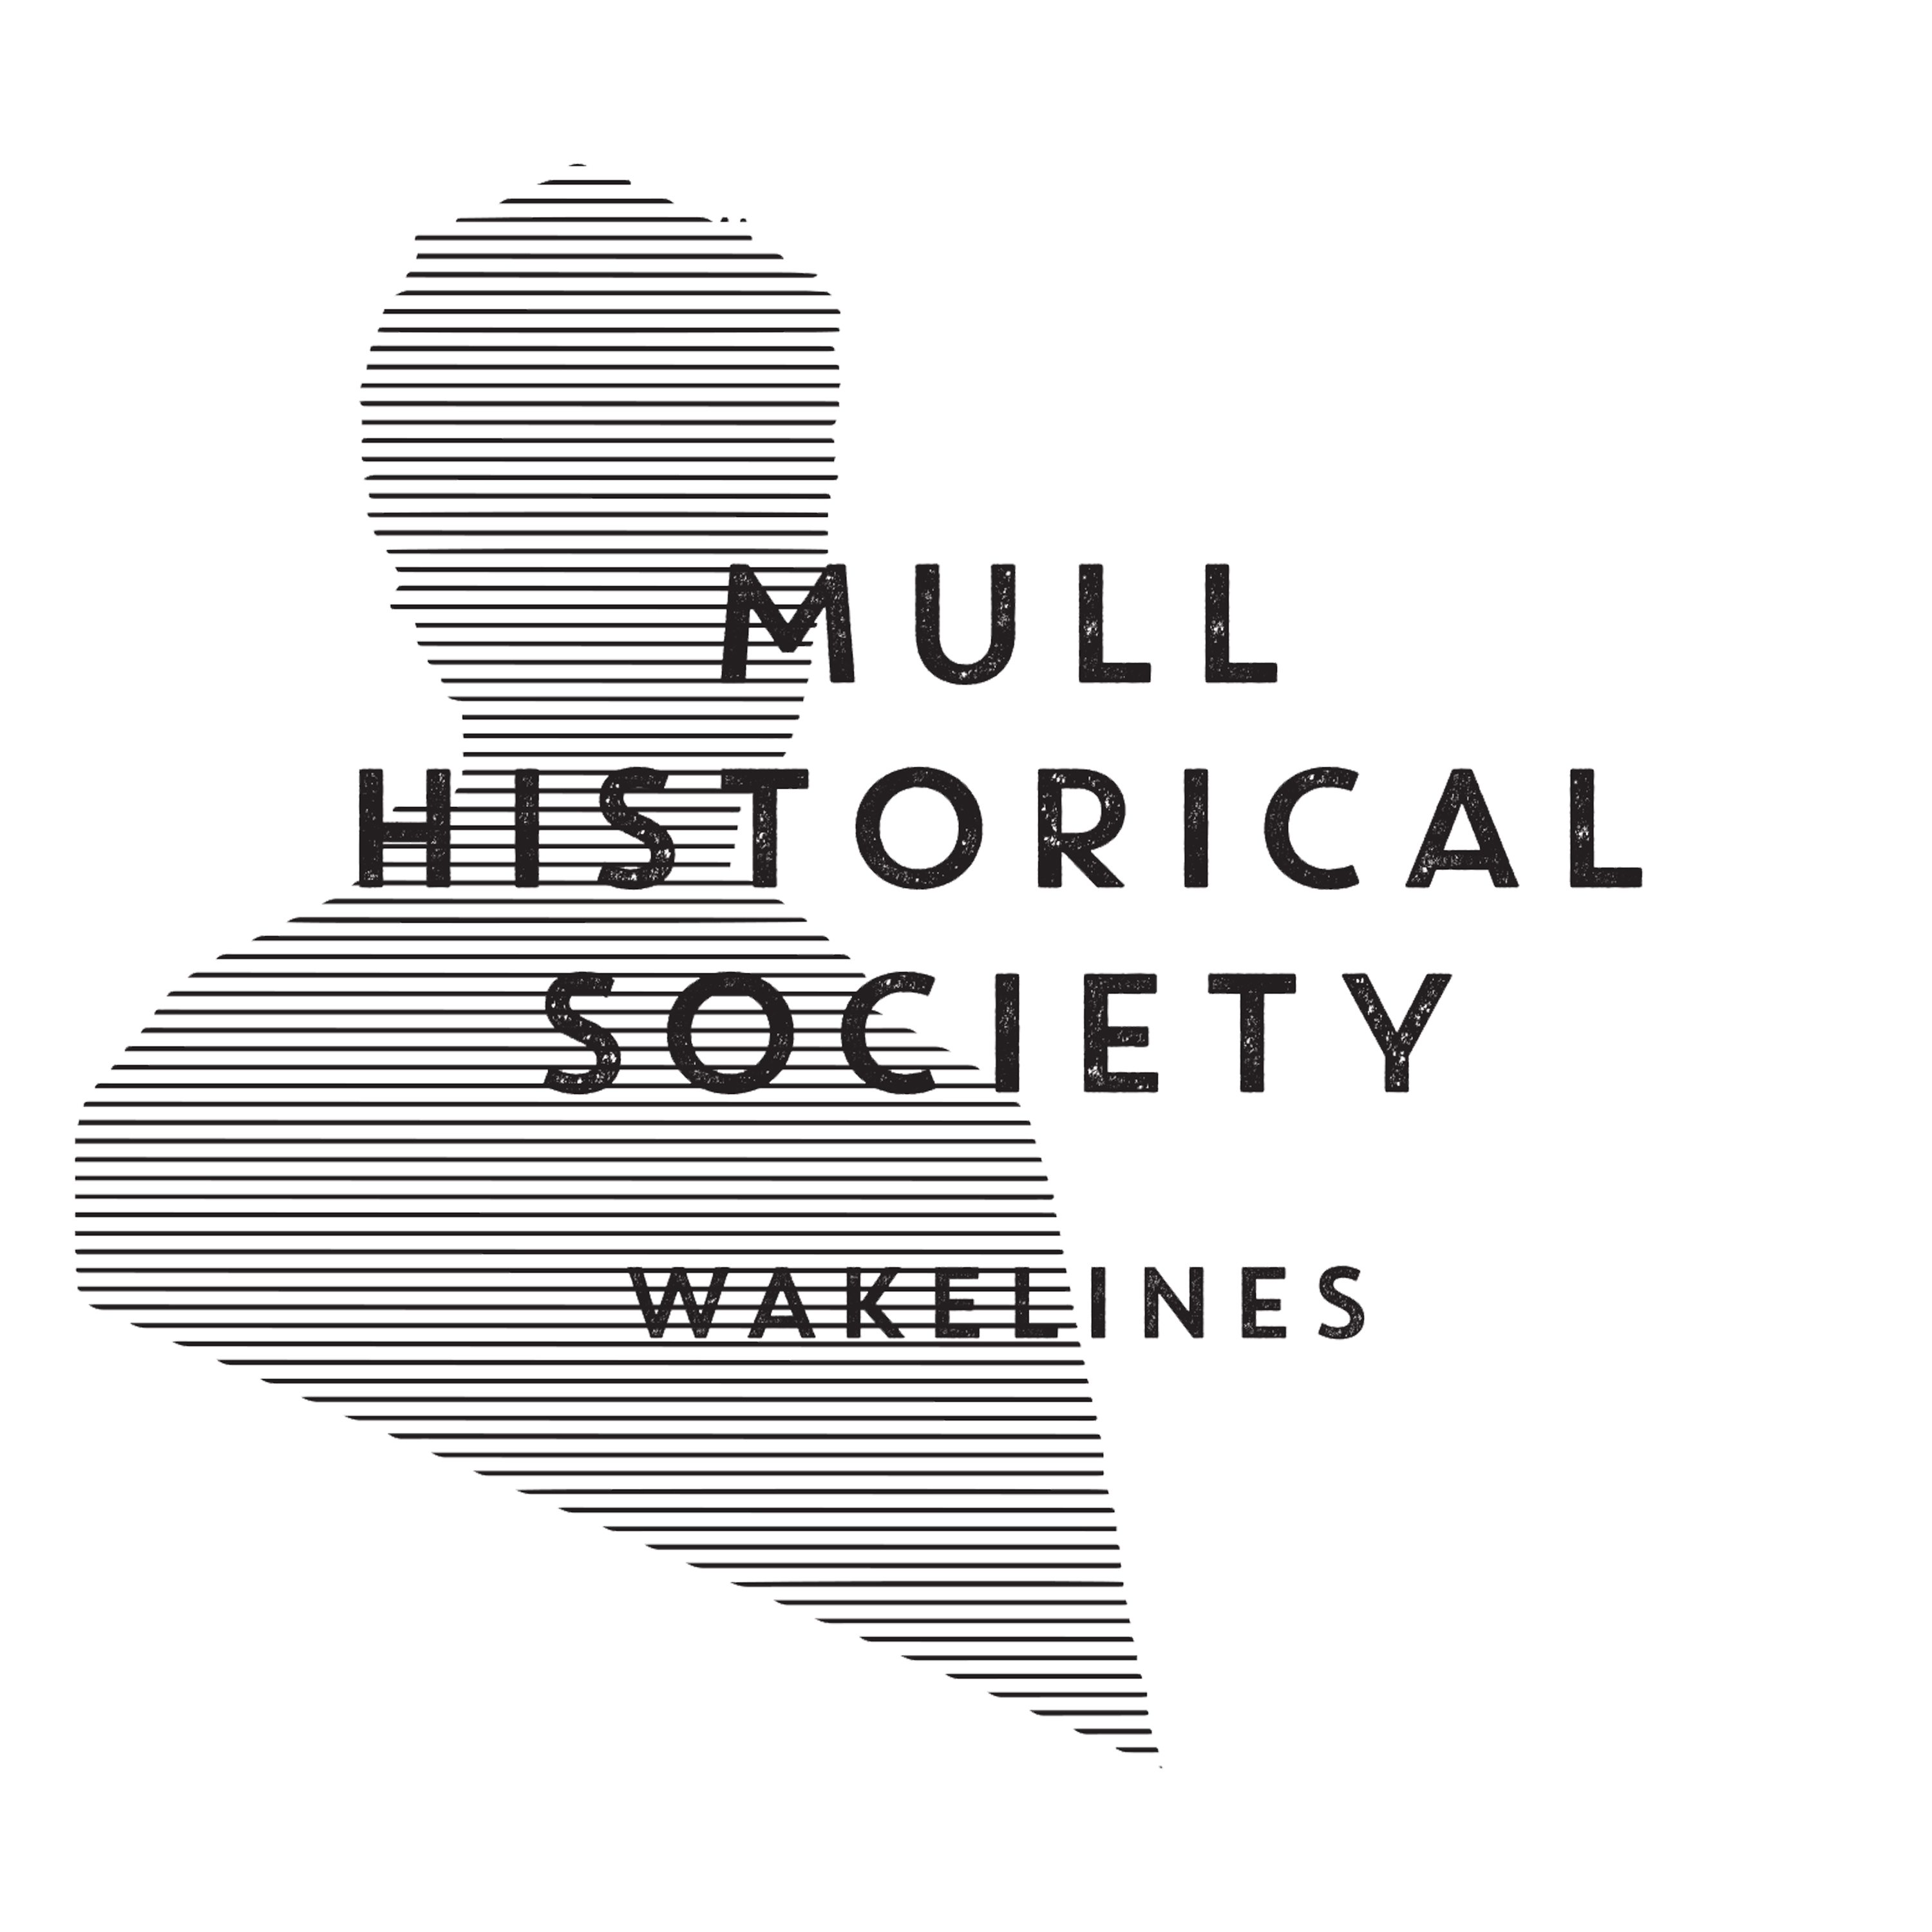 PRE-ORDER new MULL HISTORICAL SOCIETY ALBUM 'WAKELINES' NOW! Hear first single!